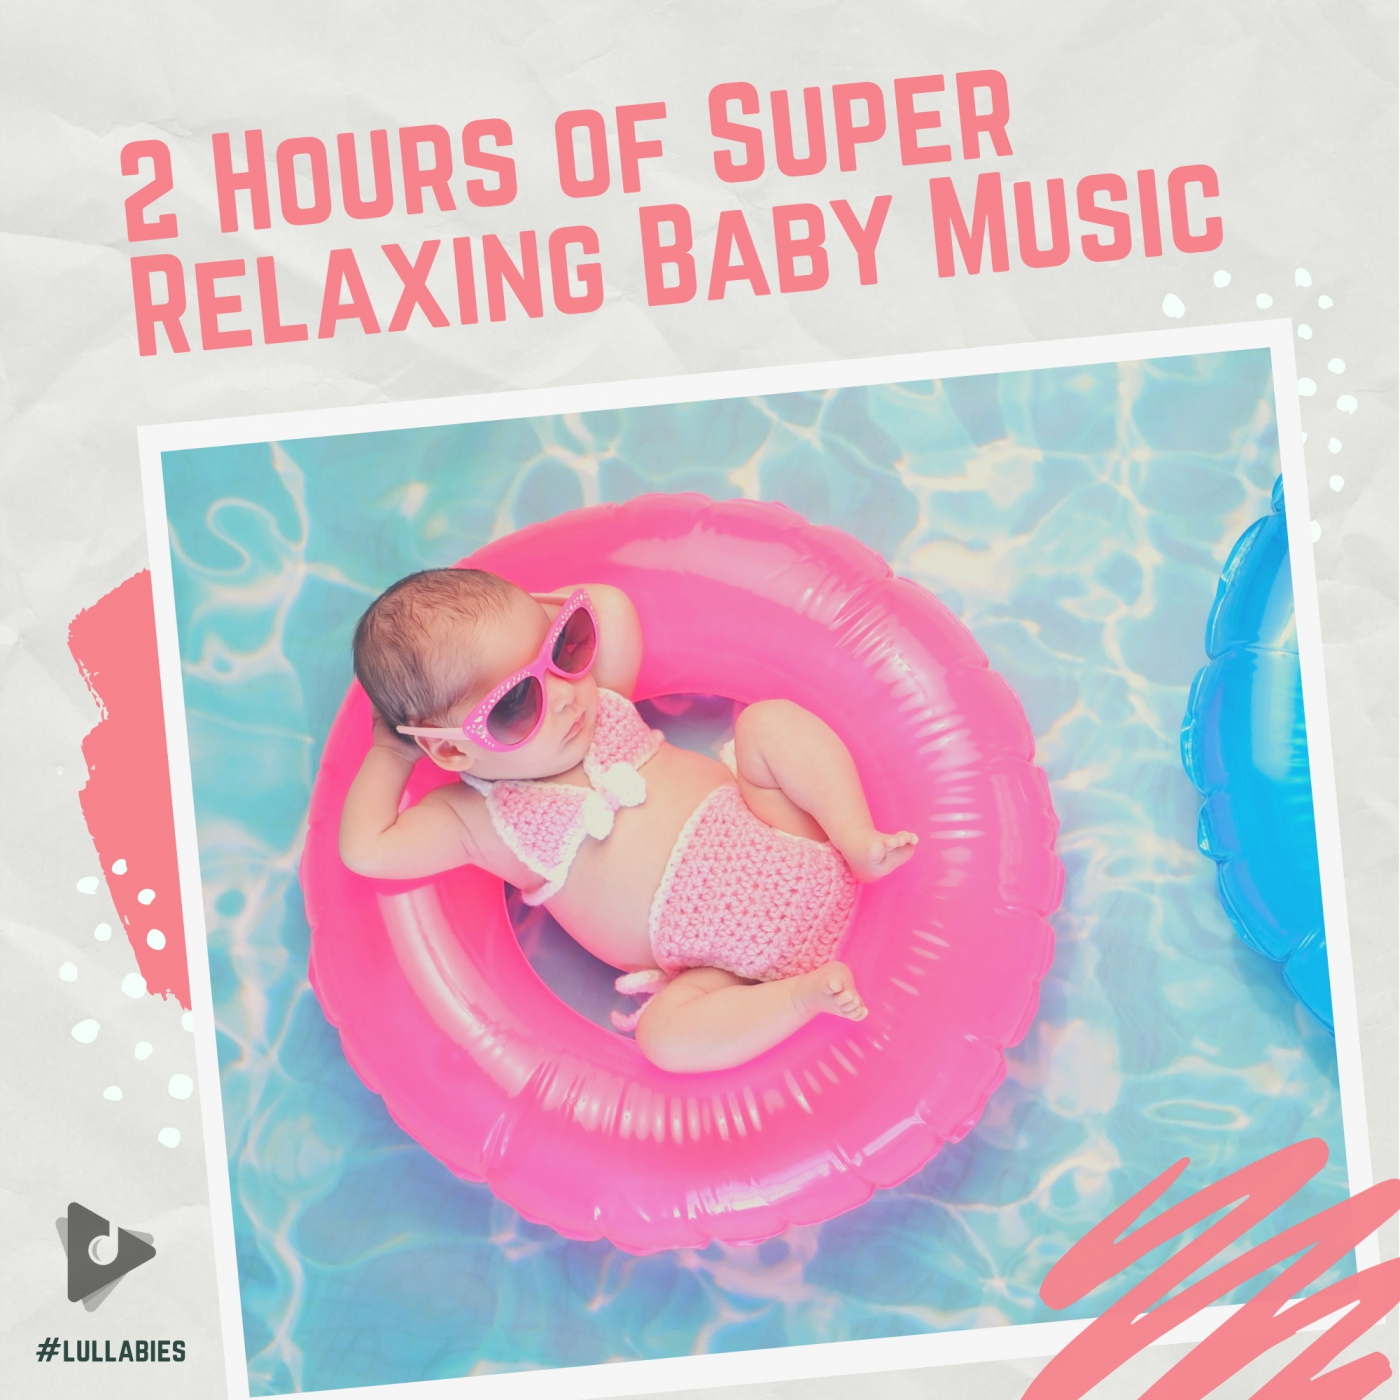 2 Hours of Super Relaxing Baby Music